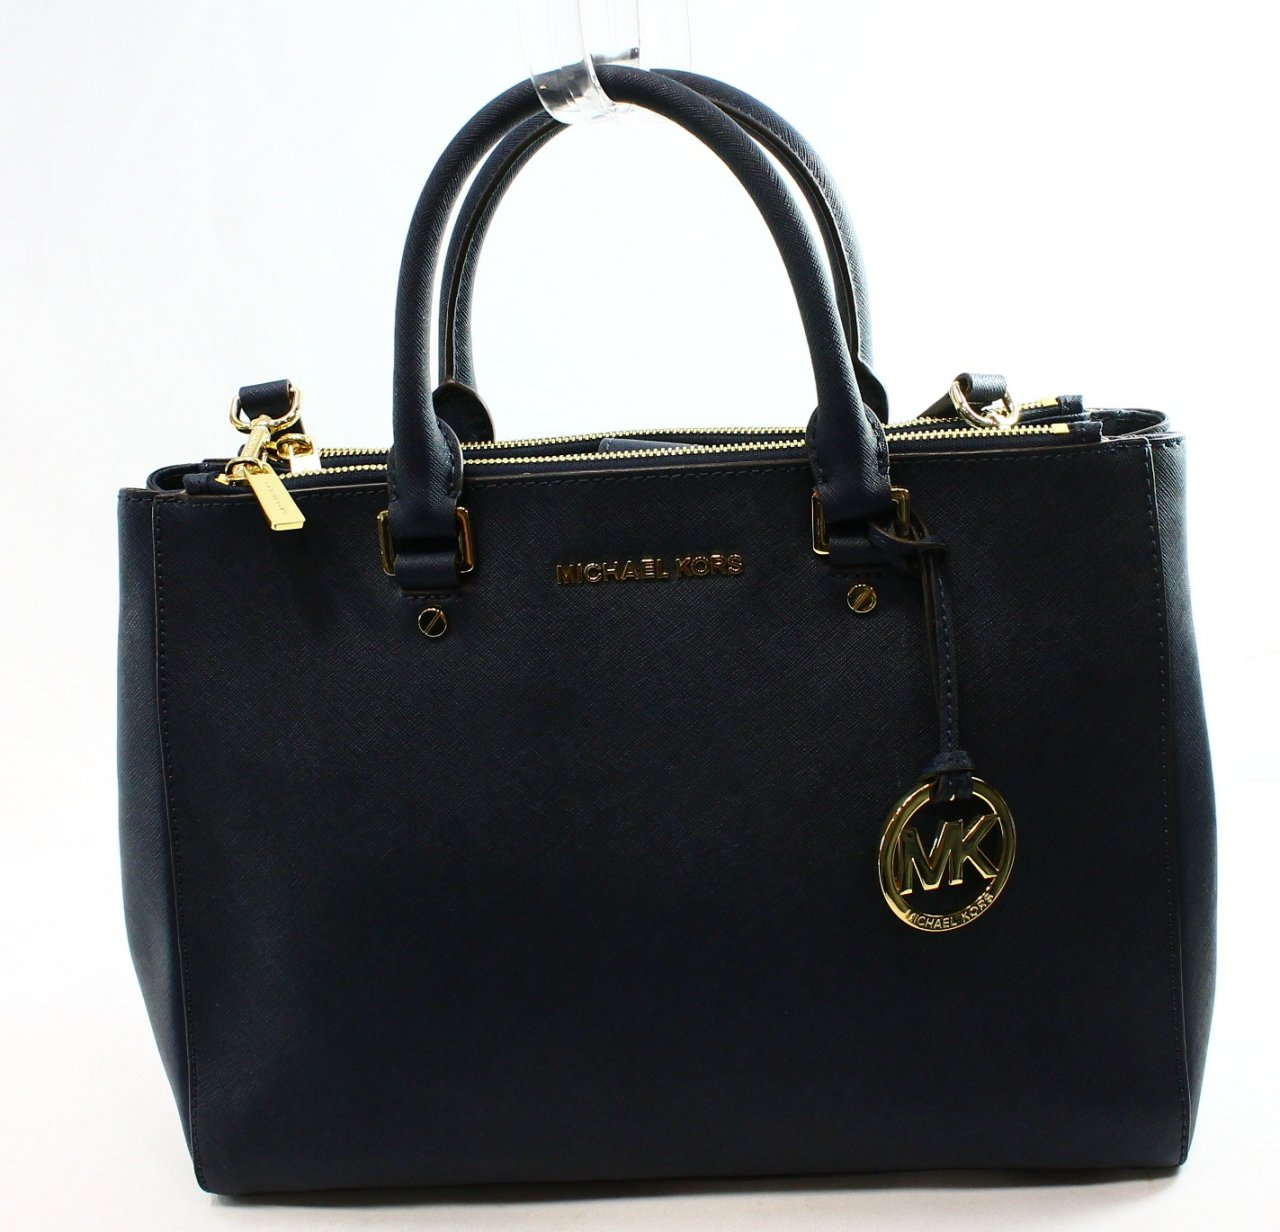 Michael Kors Blue Navy Saffiano Leather Sutton Large Satchel BAG Purse ...